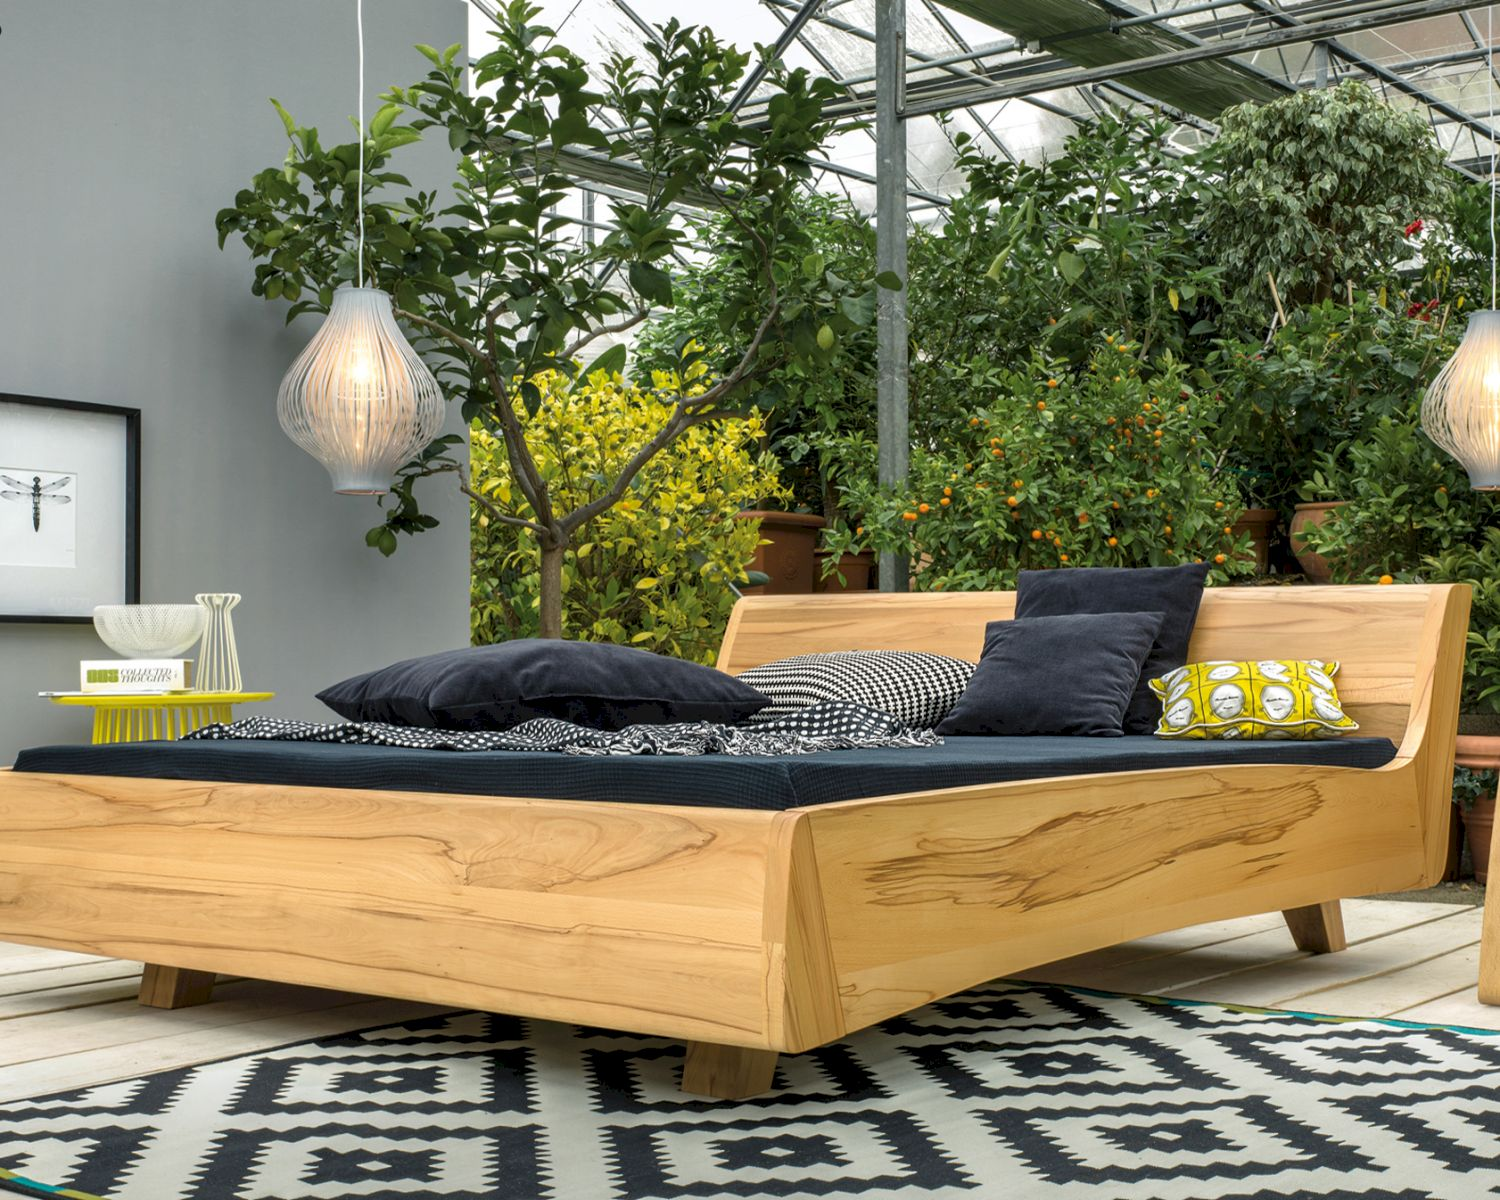 13 Best Otto Betten 140x200 Mit Matratze Interior Design Ideas Dormiente Massivholz Bett Balena